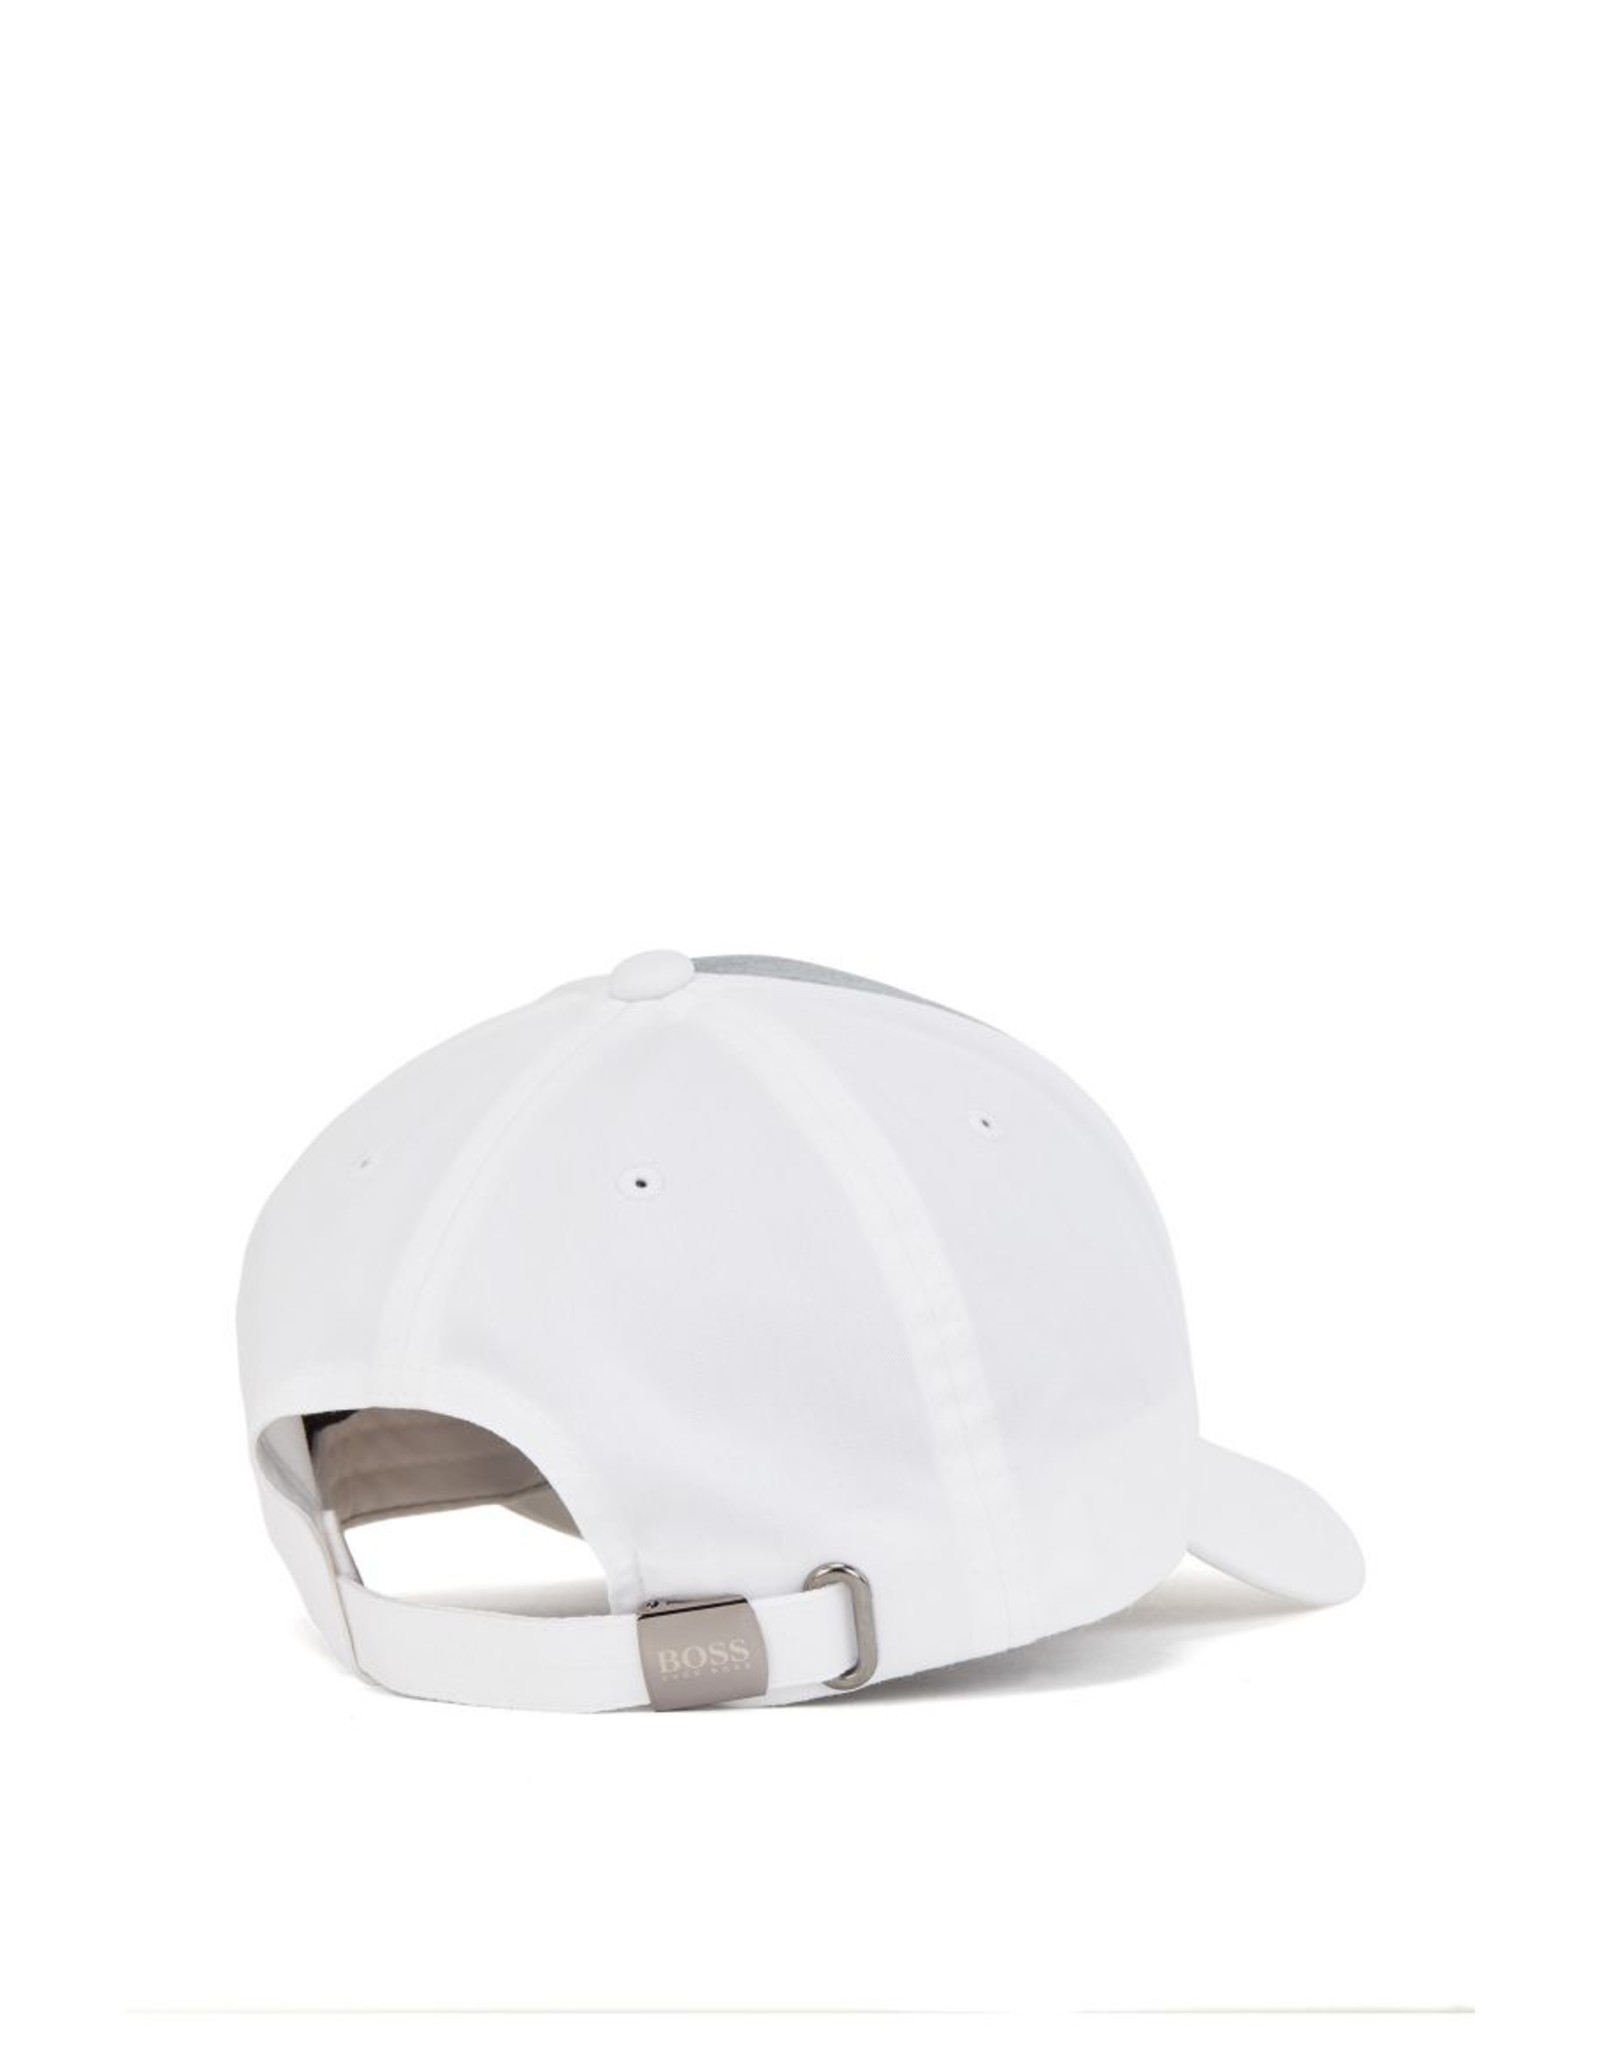 BOSS ATHLEISURE BOSS ATHLEISURE CAP-CROP SS21